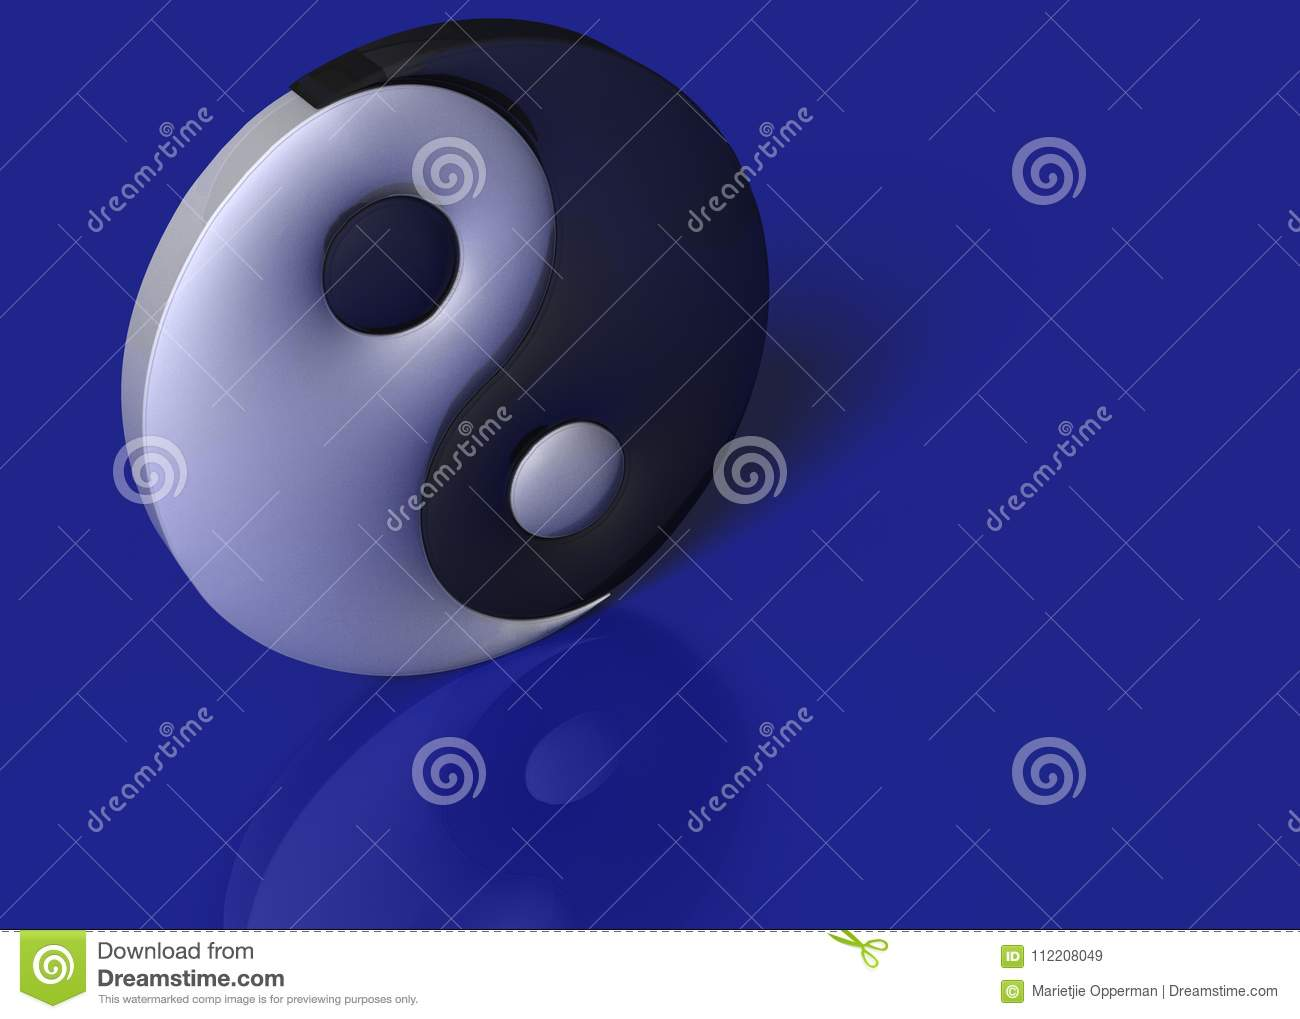 A yin yang sign on a blue background